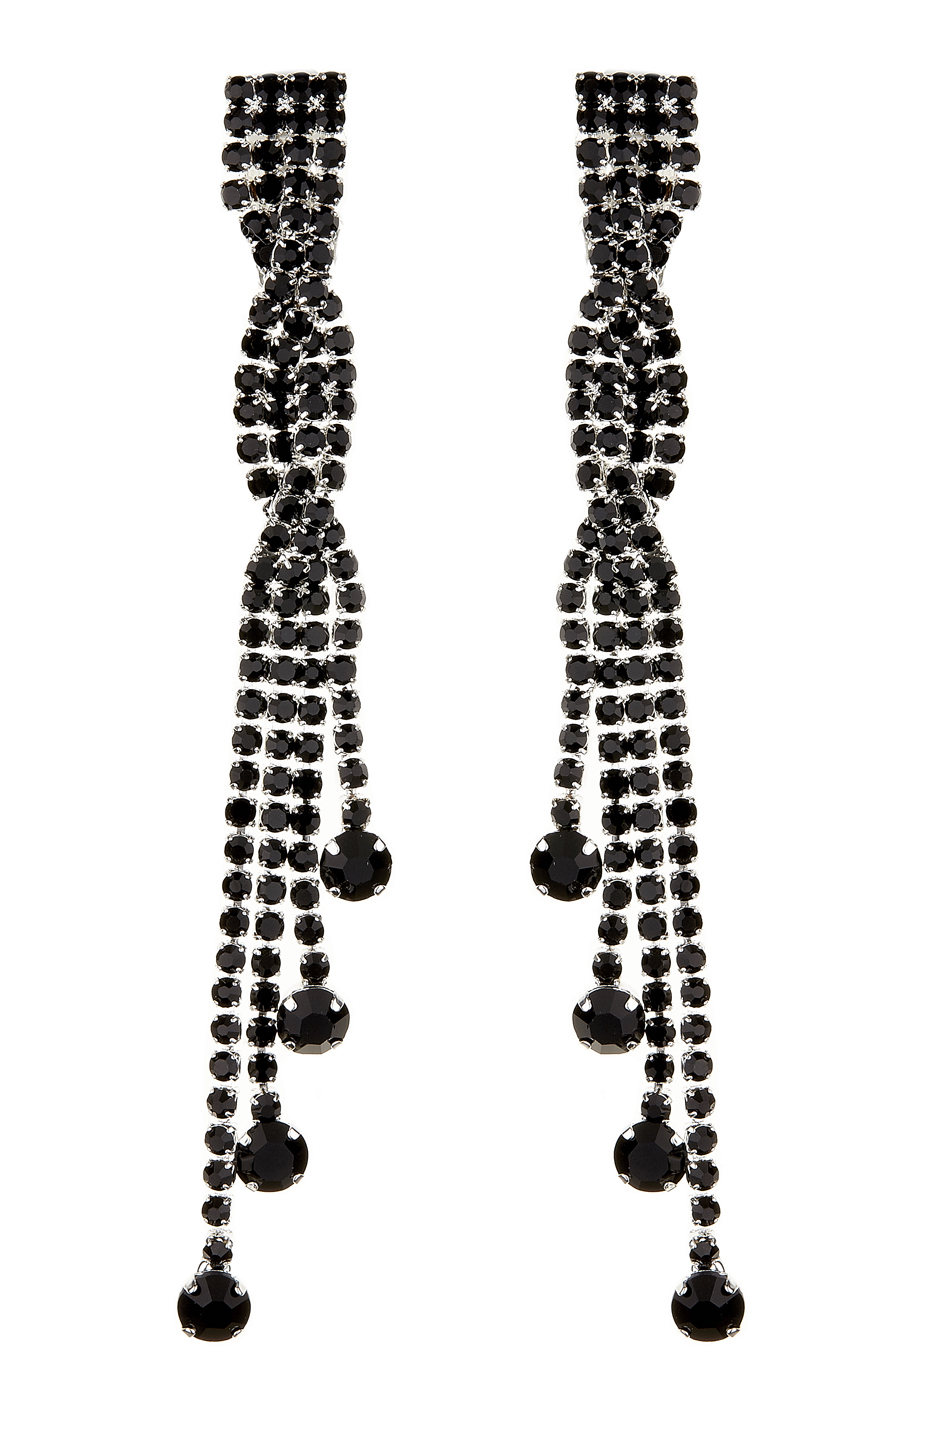 Clip On Earrings - Cabot B - silver drop earring with black crystals and stones